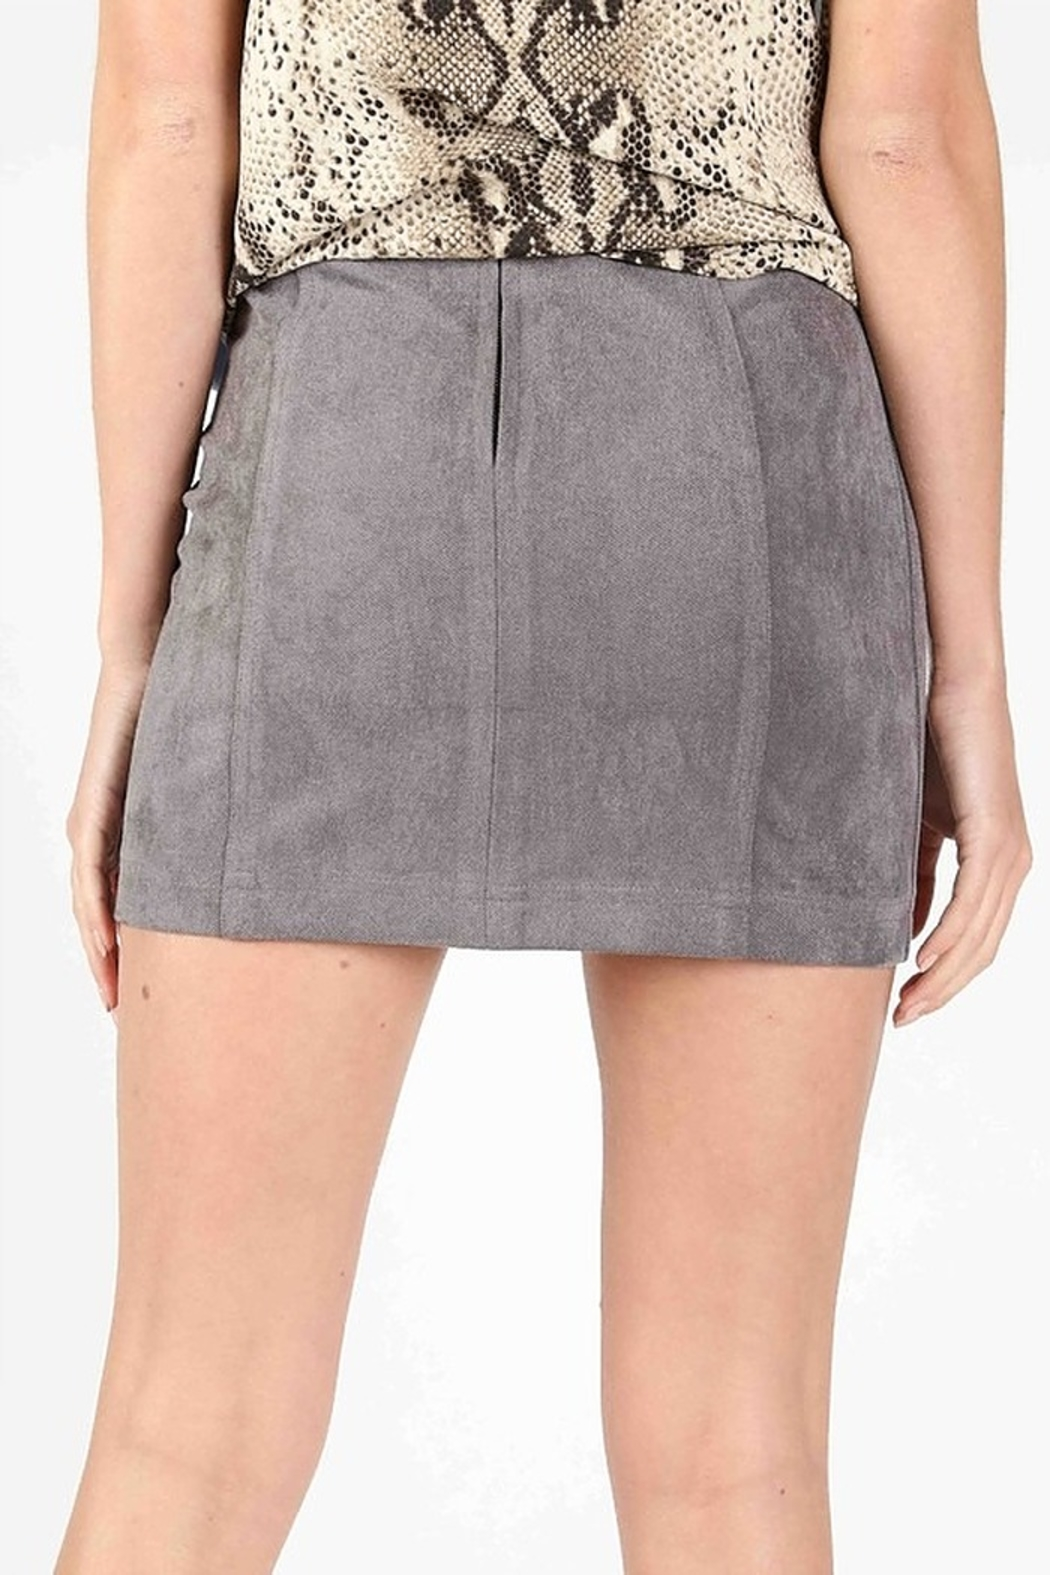 Wild Honey High Waist Suede Skirt - Side Cropped Image